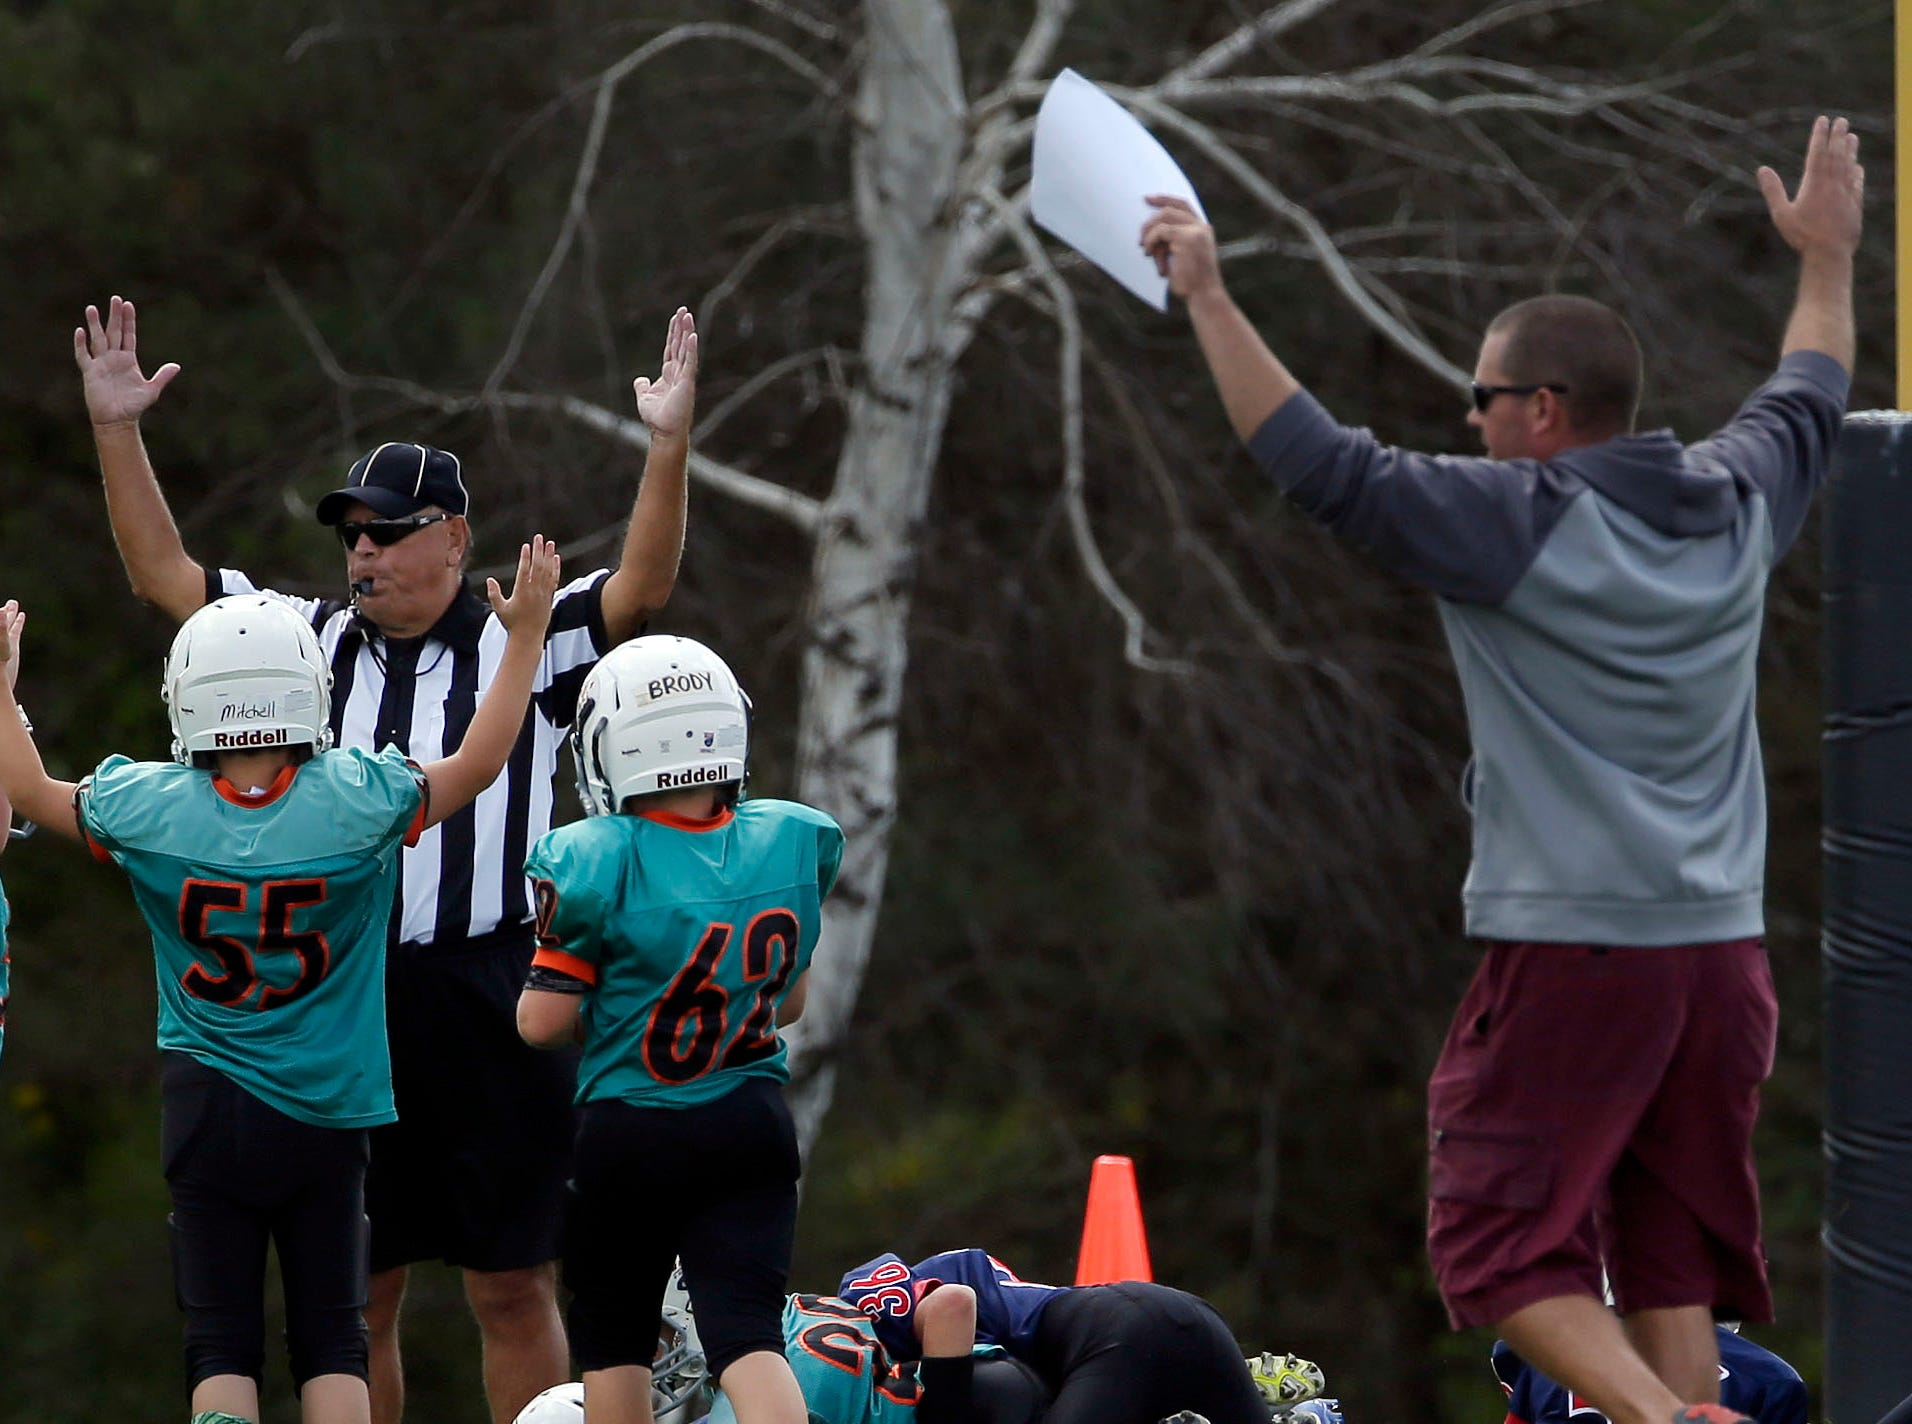 The Rockets and the referee signal a touchdown as Fox Valley Pop Warner Football opens the season Saturday, September 8, 2018, at Plamann Park in Grand Chute, Wis.Ron Page/USA TODAY NETWORK-Wisconsin